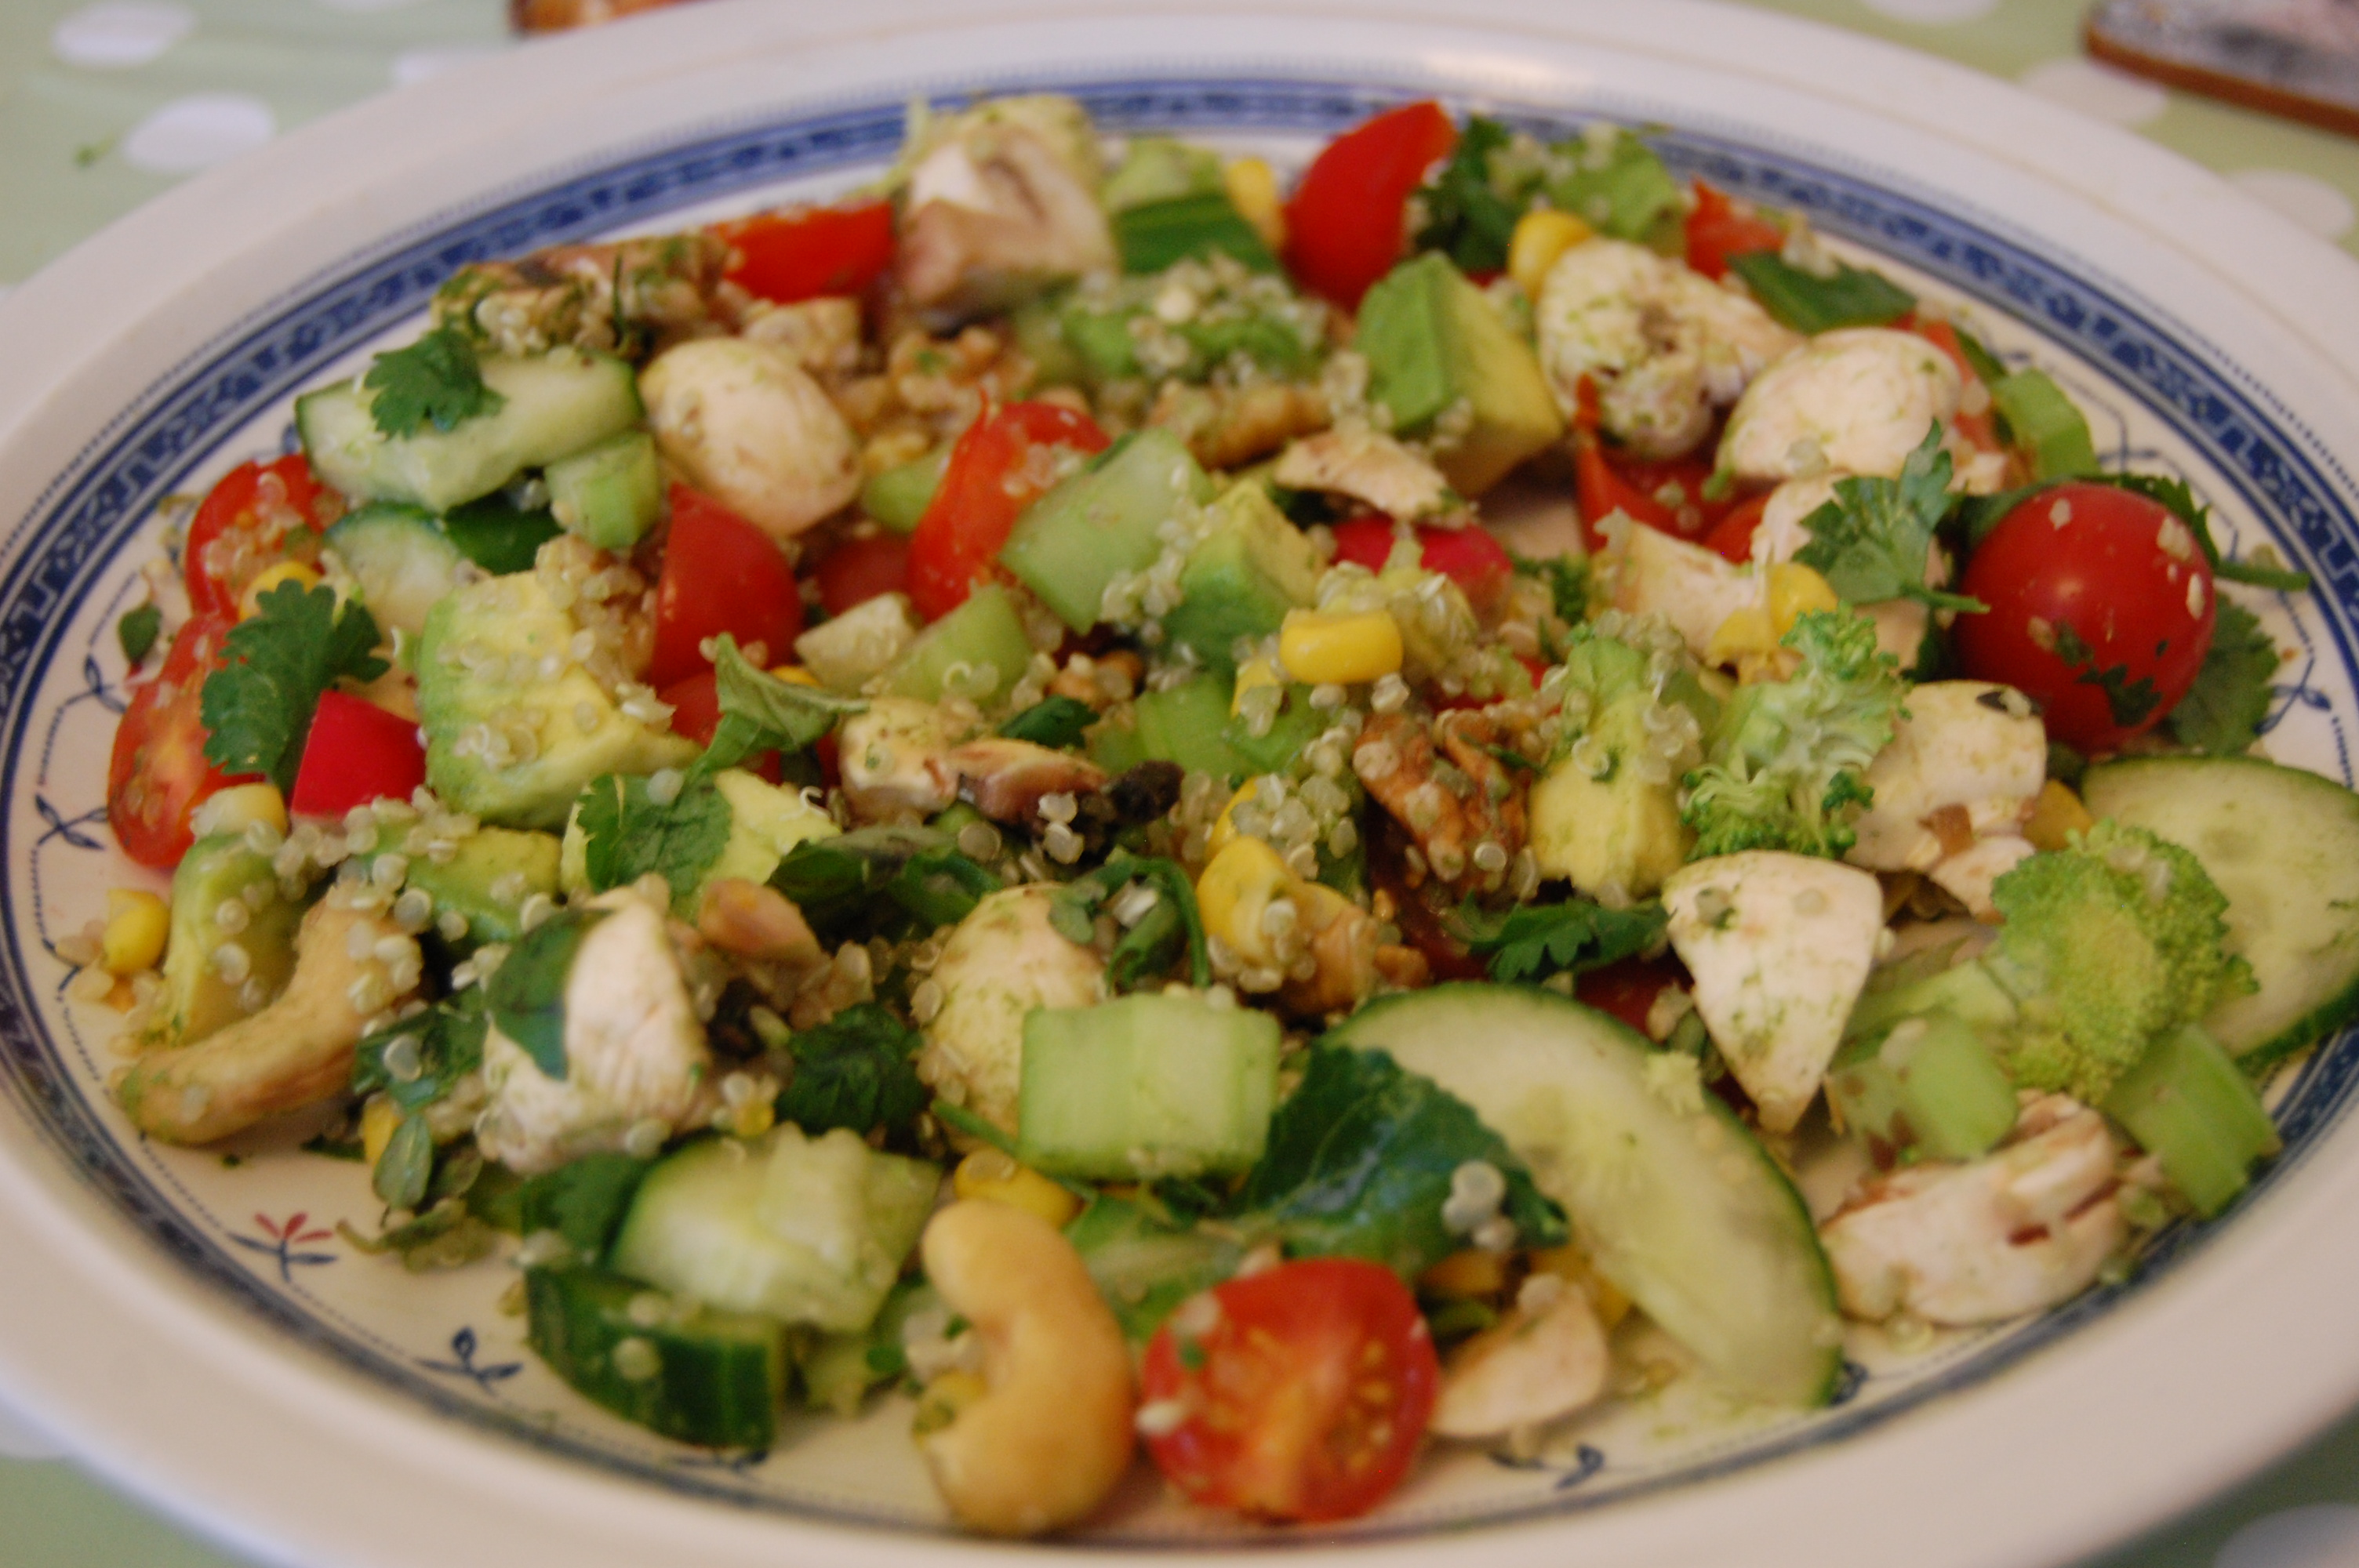 A colourful salad made with quinoa, nuts and herbs.